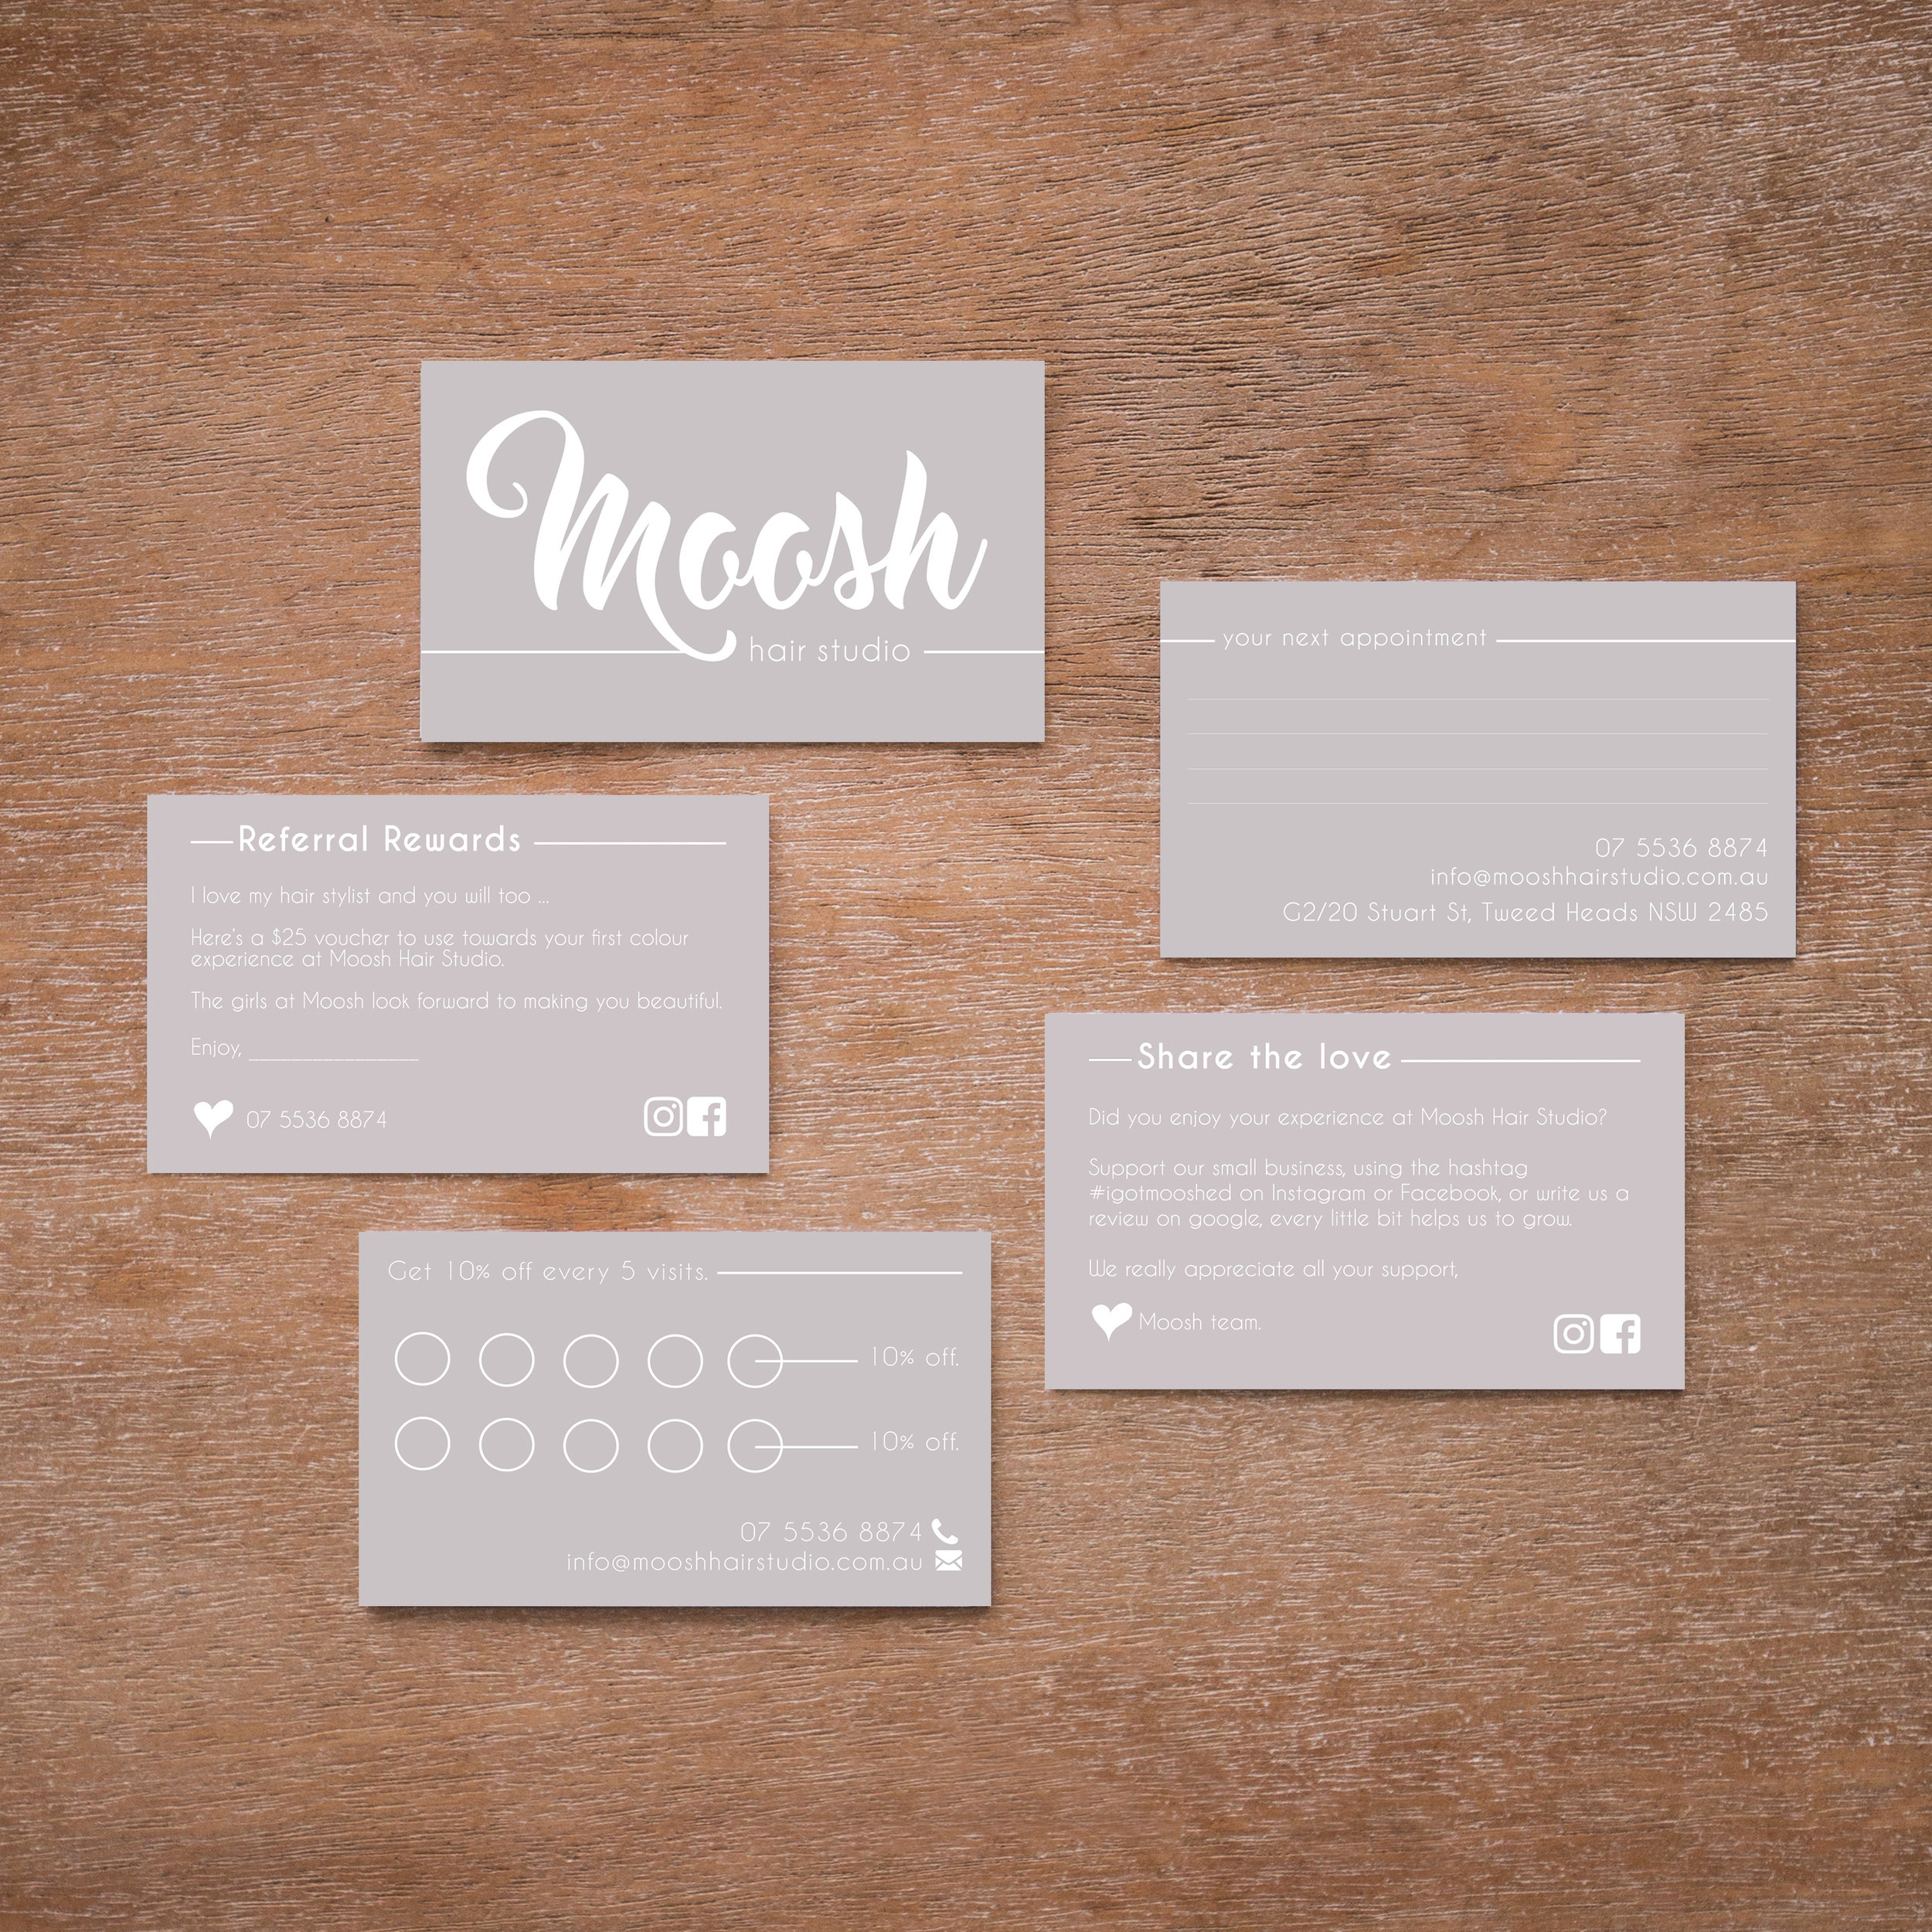 IMG_7739- brighter - updated cards.jpg